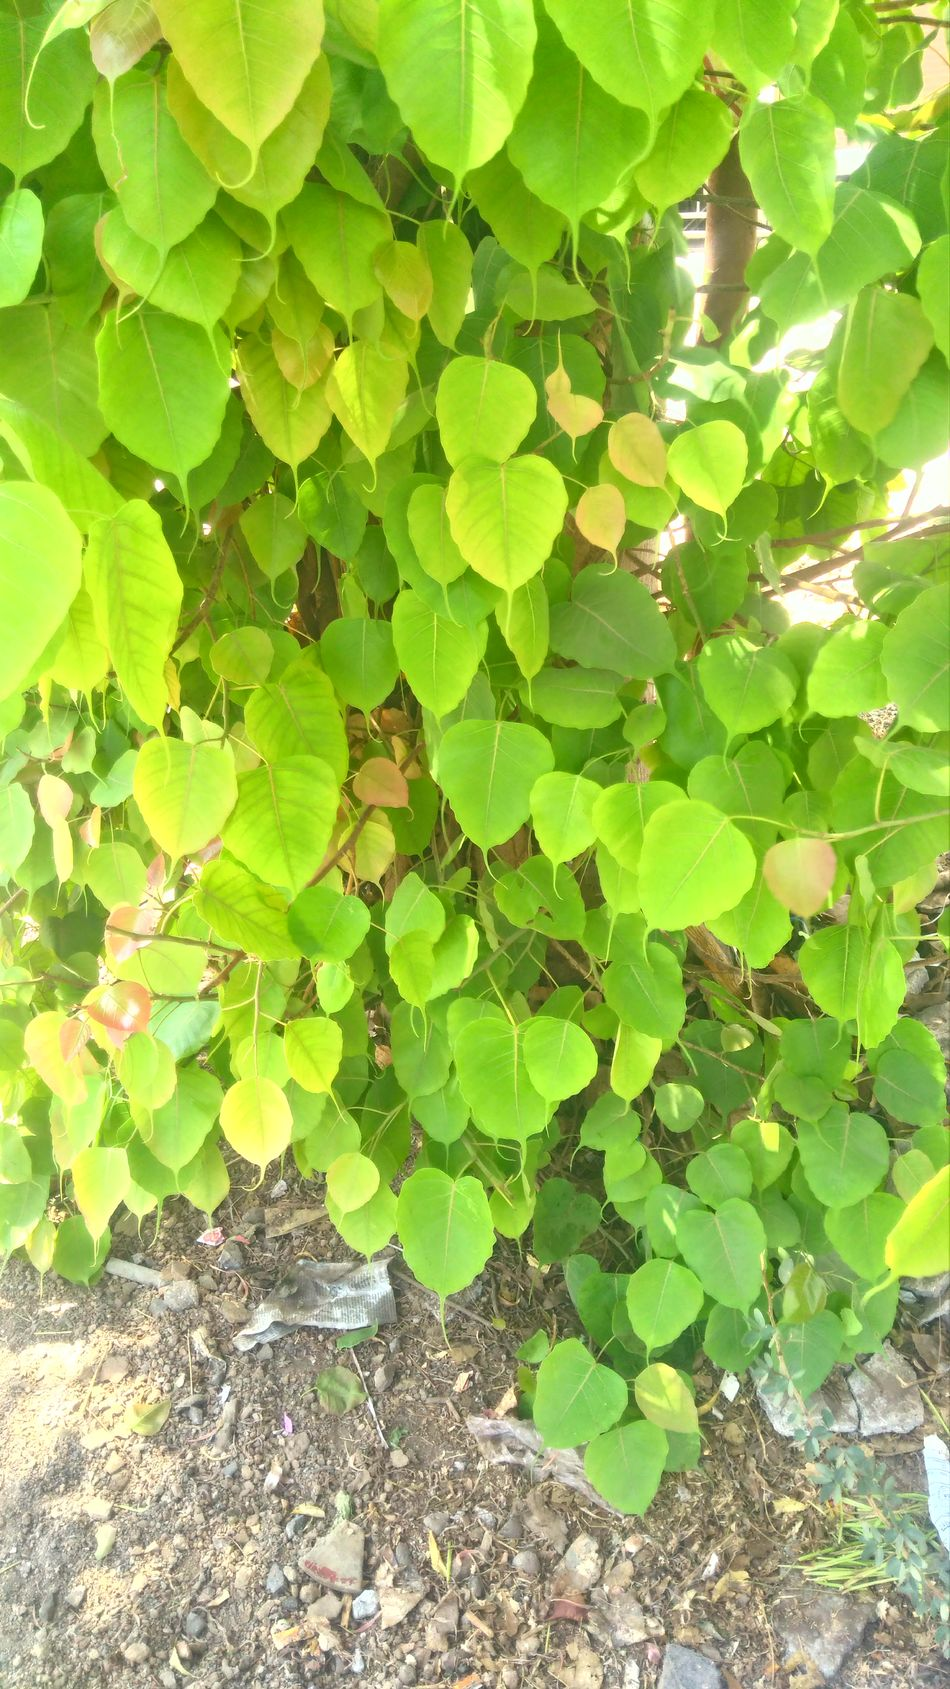 New arrival of leafs Leaf Green Color Growth Outdoors Freshness